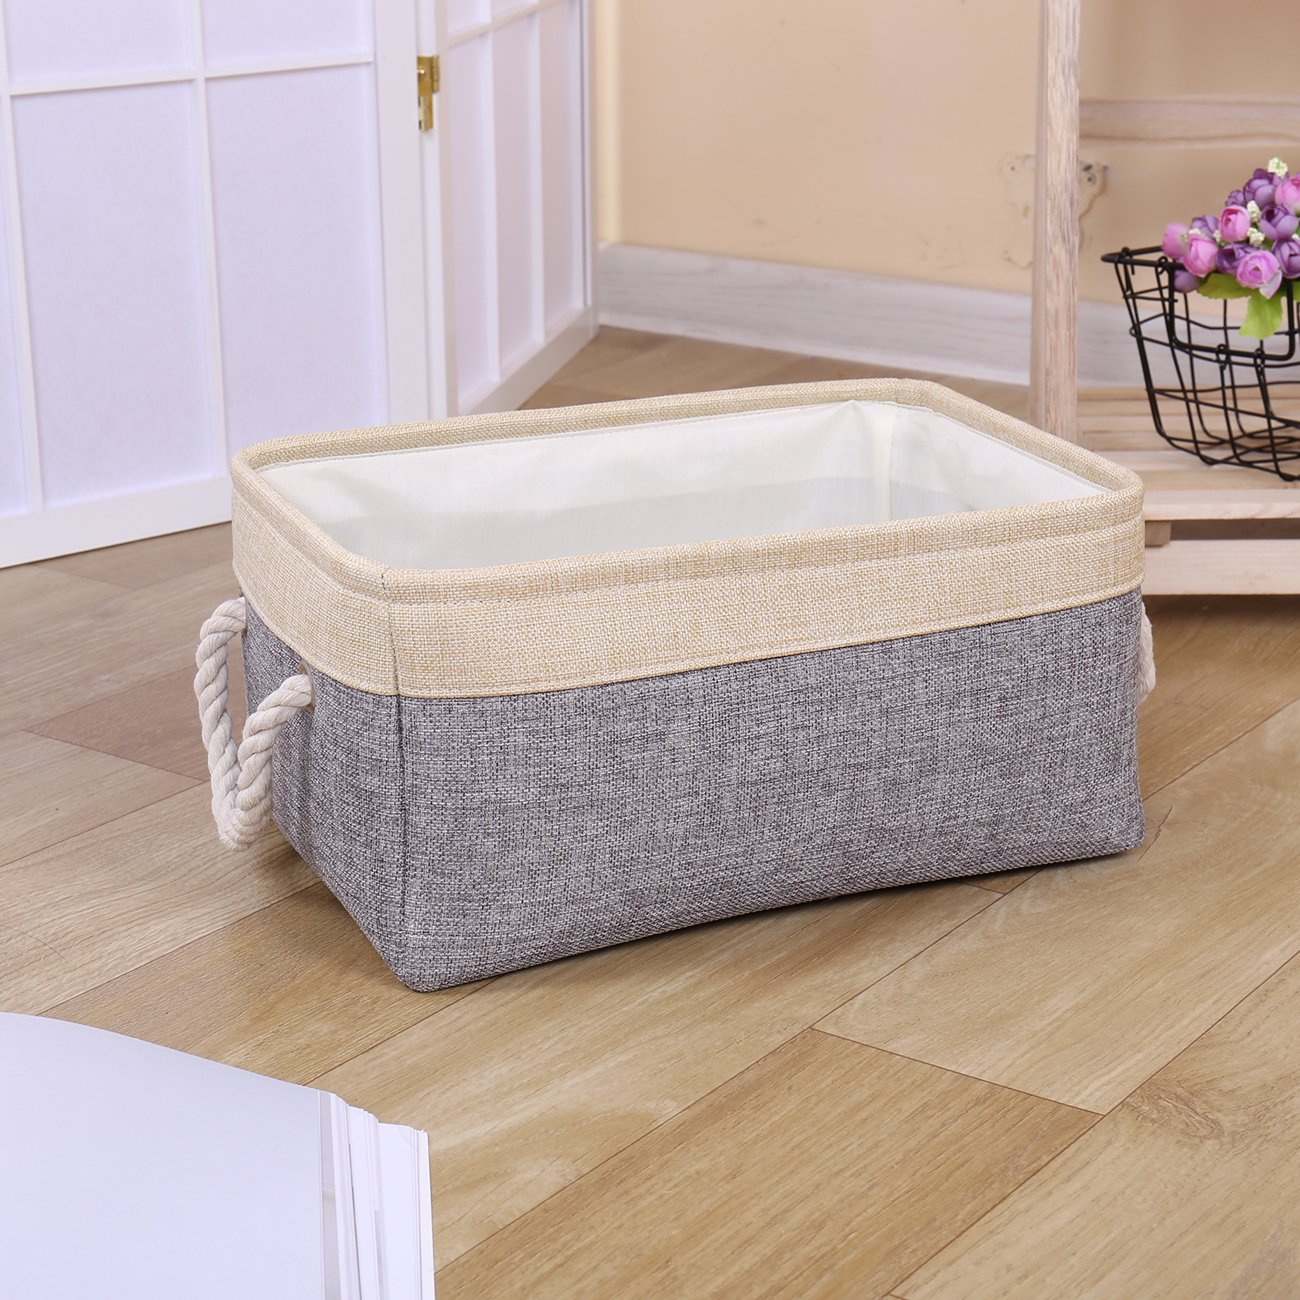 The Best Storage Container Sets (& Baskets) For Your Bathroom: Reviews & Buying Guide 8